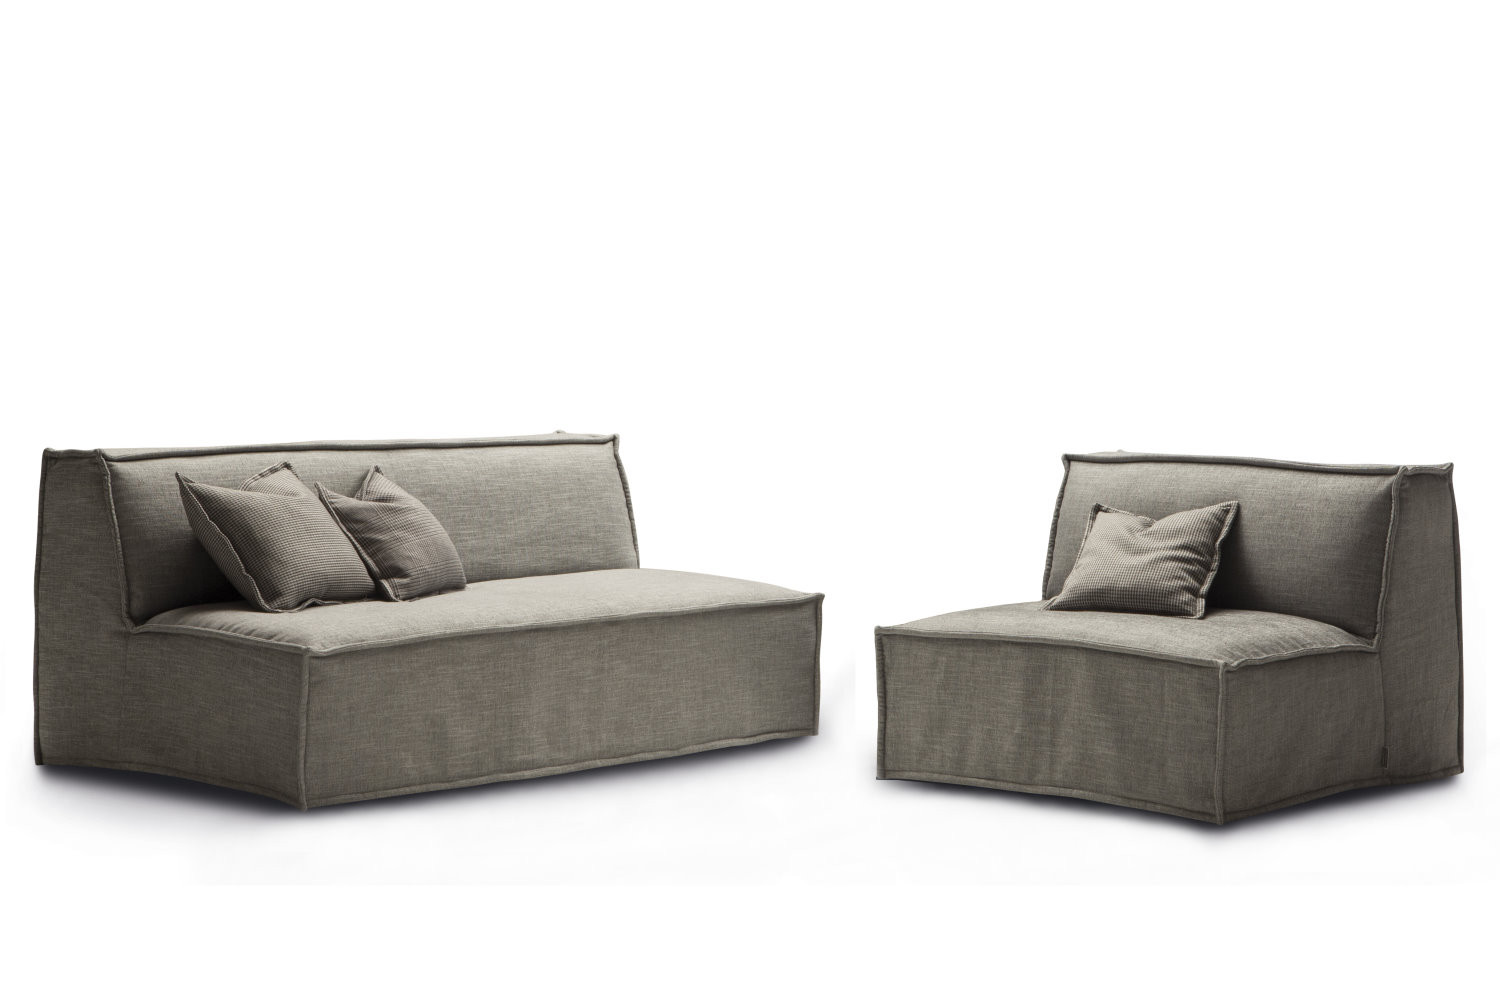 Tommy Folding Sofa With Removable Cover